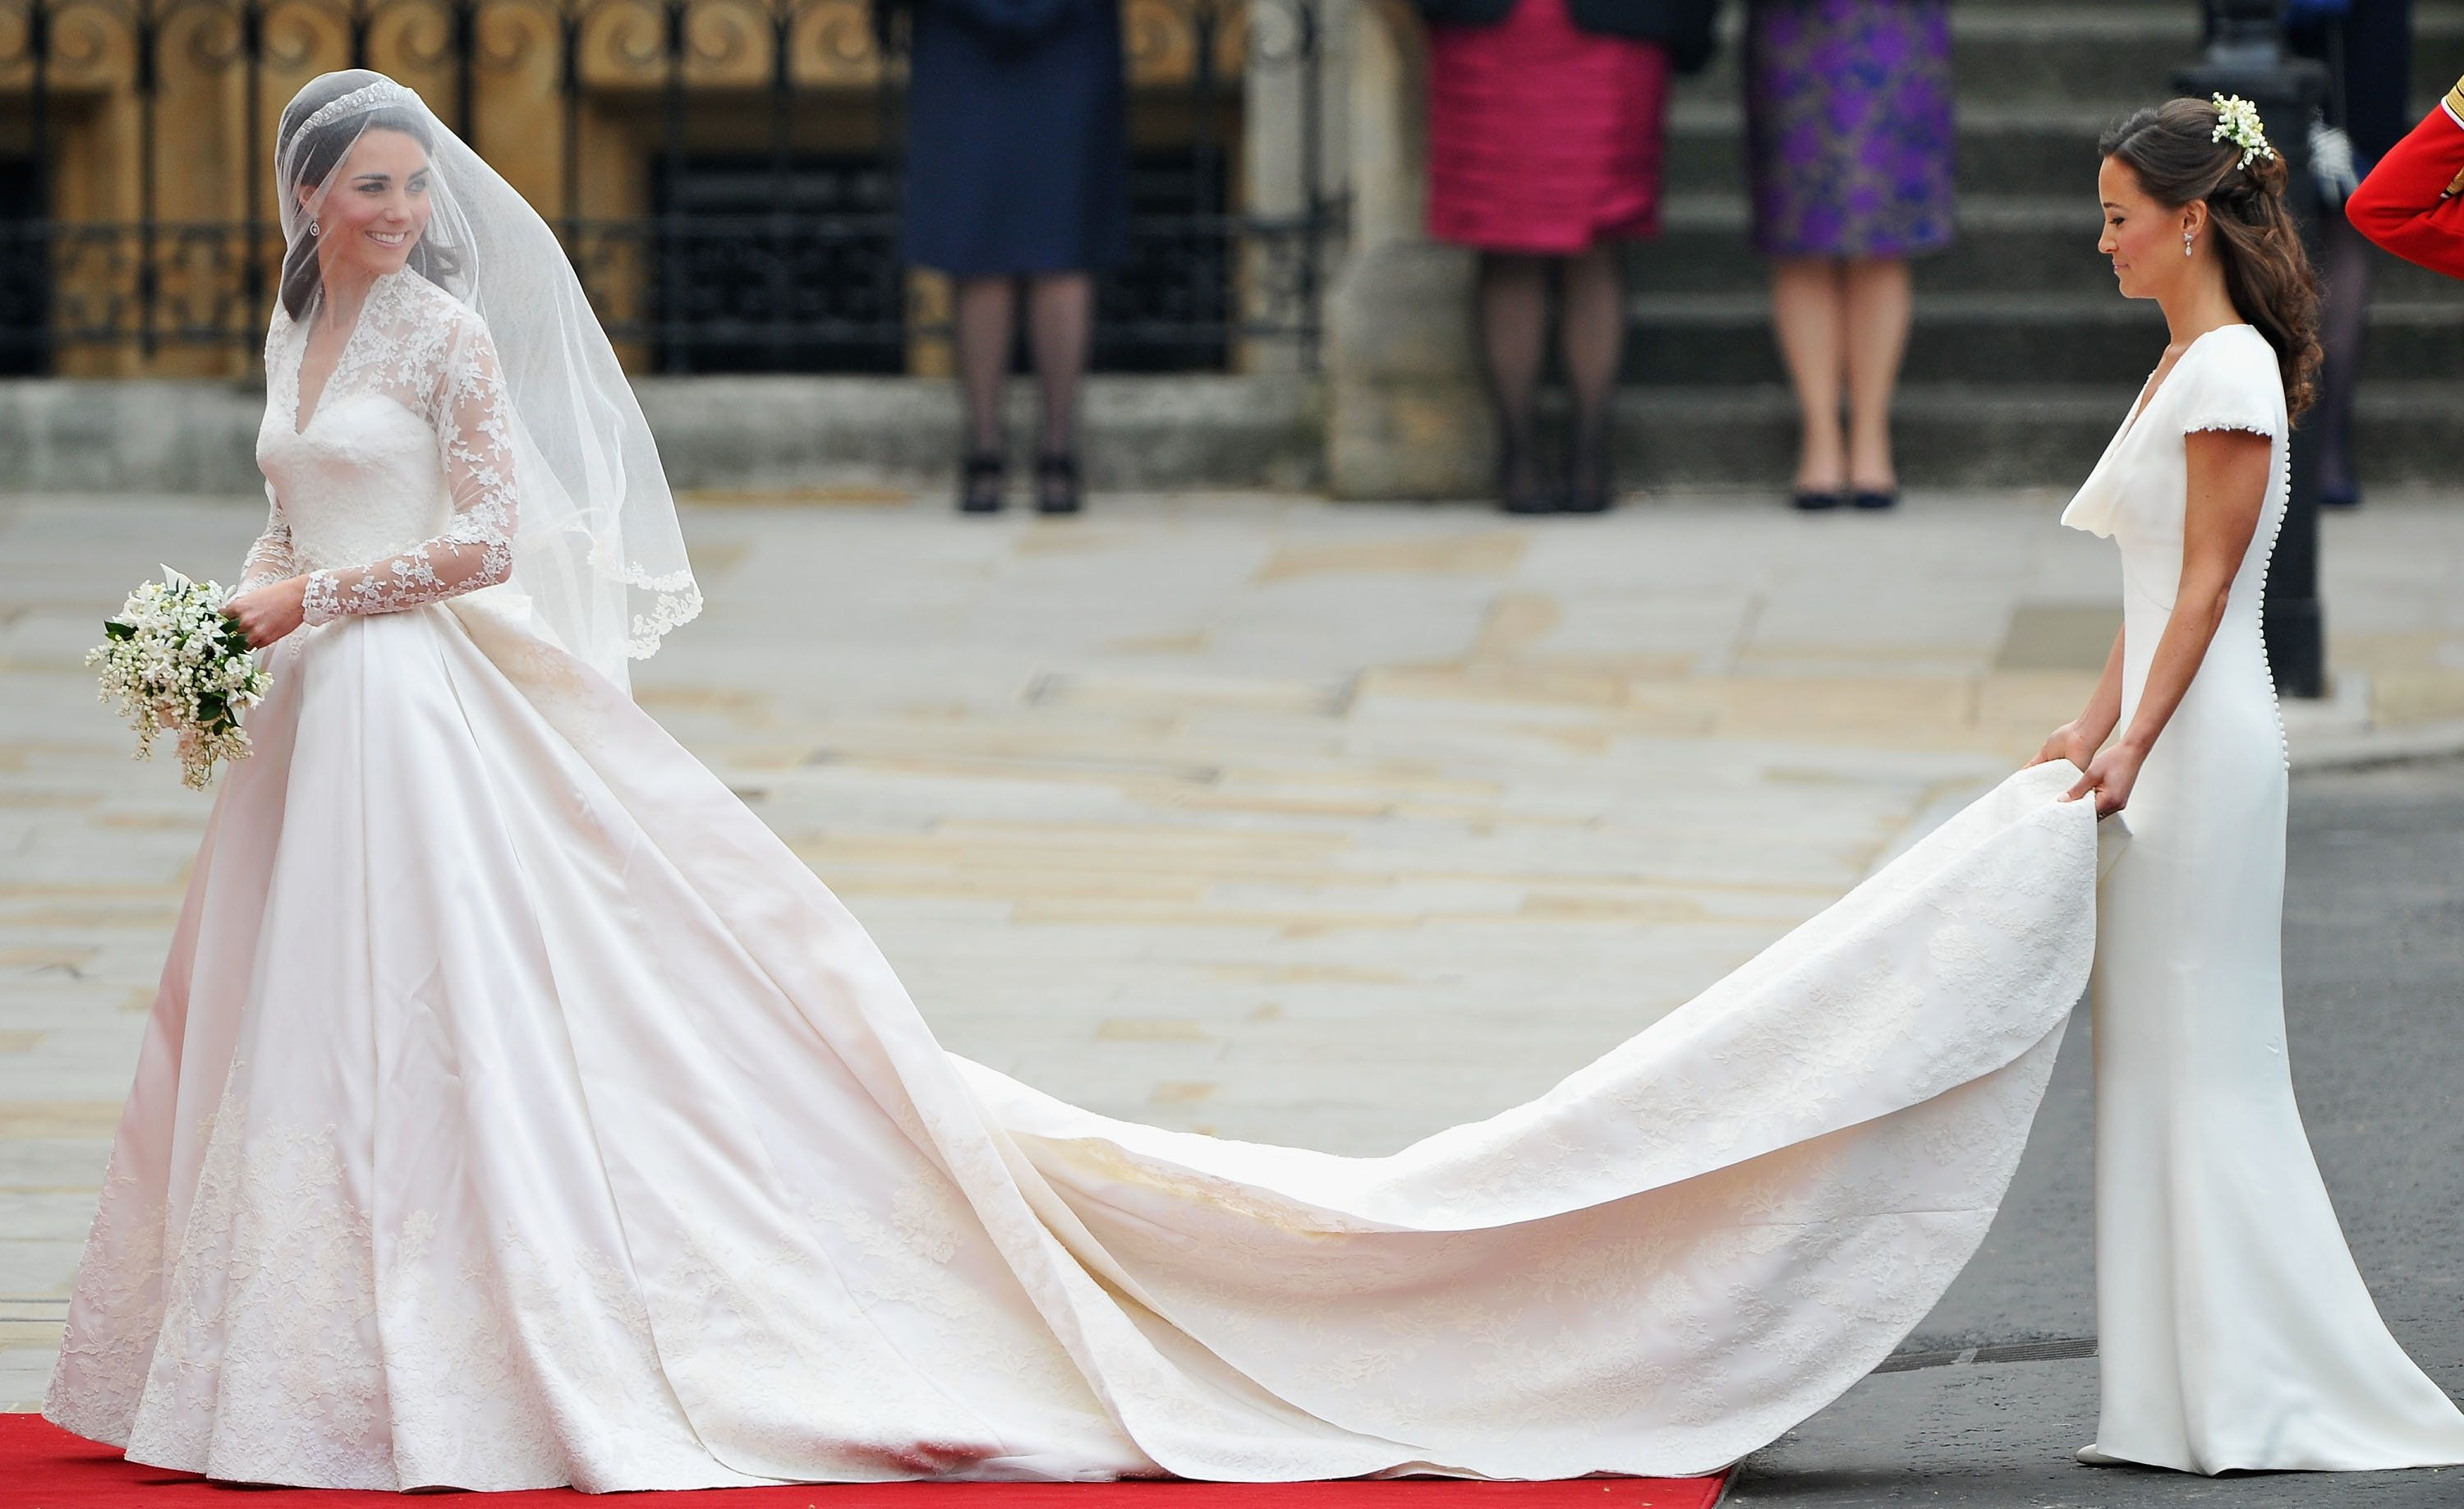 LONDON, ENGLAND - APRIL 29:  Catherine Middleton waves to the crowds as her sister and Maid of Honour Pippa Middleton holds her dress before walking in to the Abbey to attend the Royal Wedding of Prince William to Catherine Middleton at Westminster Abbey on April 29, 2011 in London, England. The marriage of the second in line to the British throne is to be led by the Archbishop of Canterbury and will be attended by 1900 guests, including foreign Royal family members and heads of state. Thousands of well-wishers from around the world have also flocked to London to witness the spectacle and pageantry of the Royal Wedding.  (Photo by Pascal Le Segretain/Getty Images)